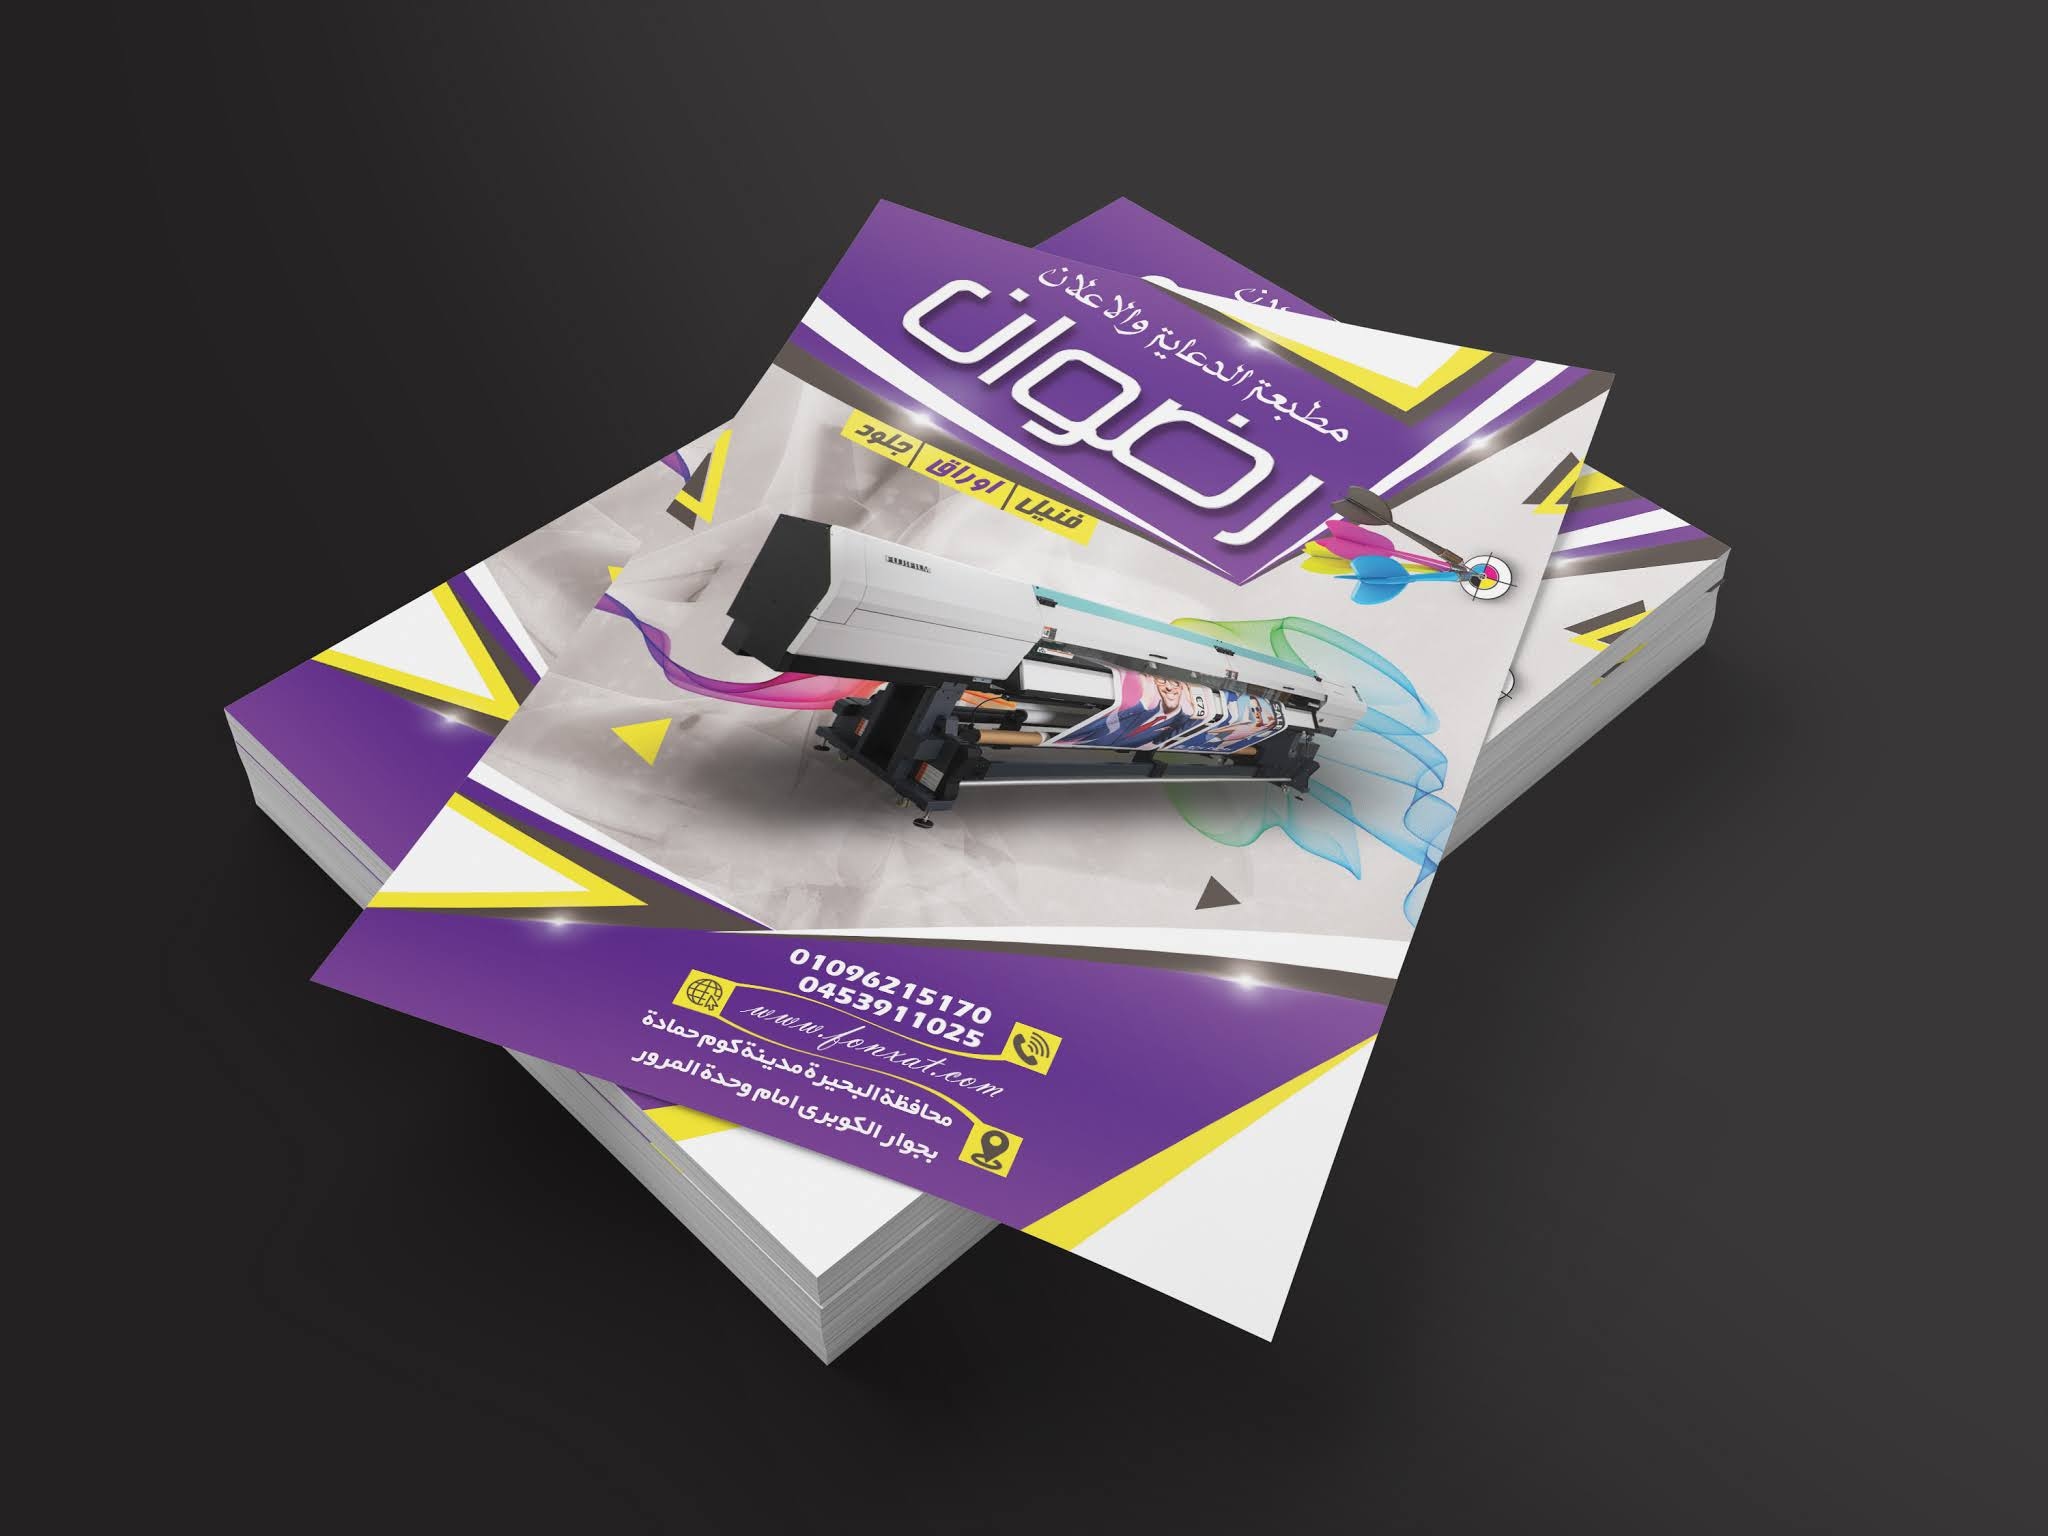 Free download flyer or open source psd poster for printing and advertising companies